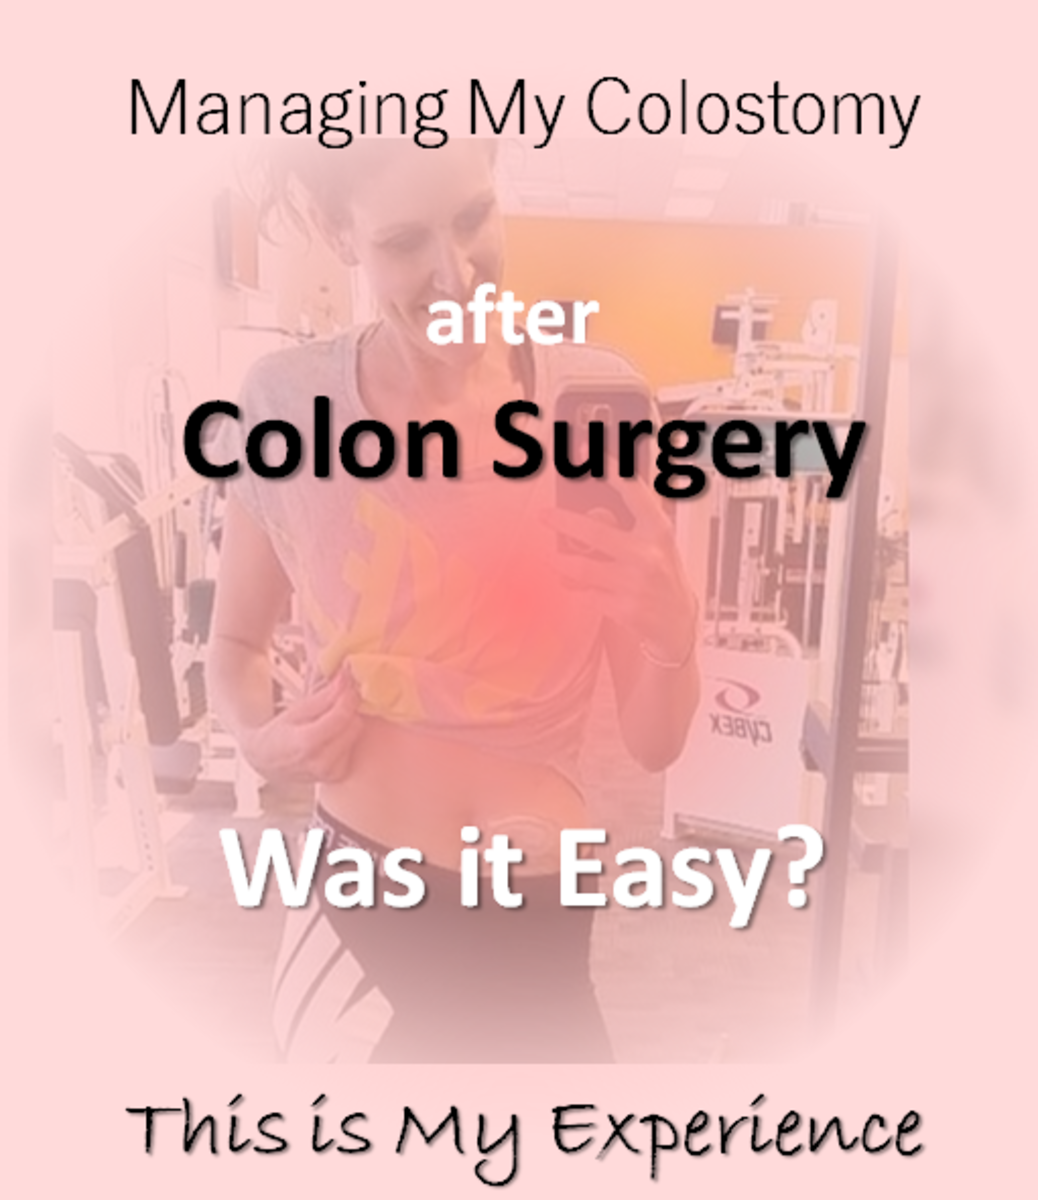 Is Managing a Colostomy After Colon Surgery Easy? - This Article is About My Experience